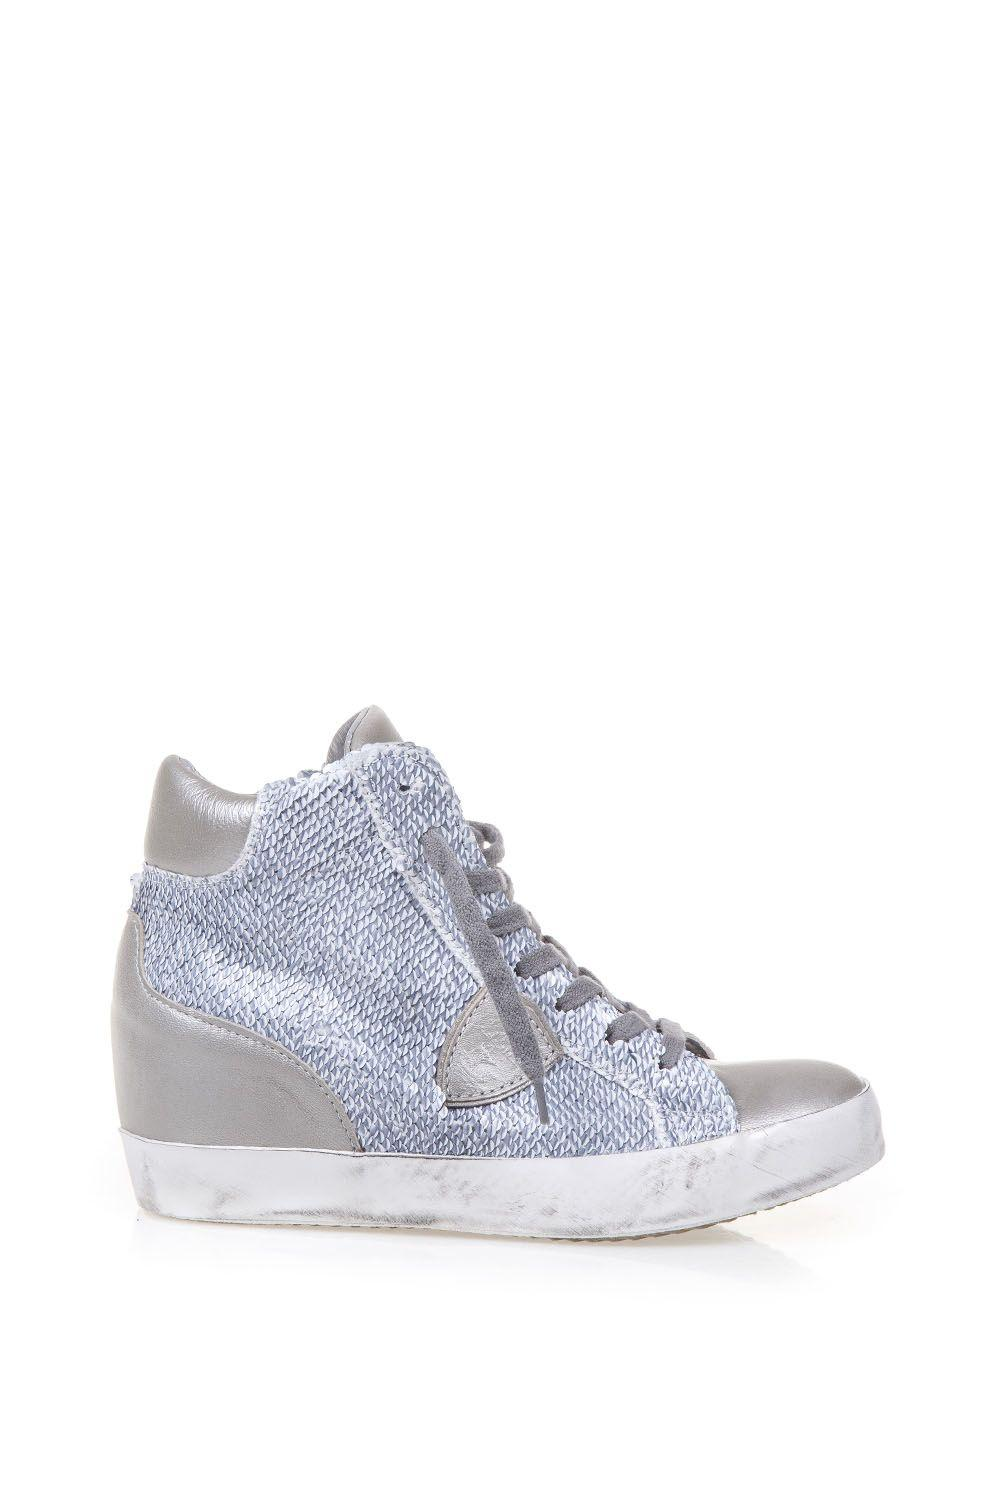 Philippe Model Squined Fabric & Leather Sneakers In Grey-silver